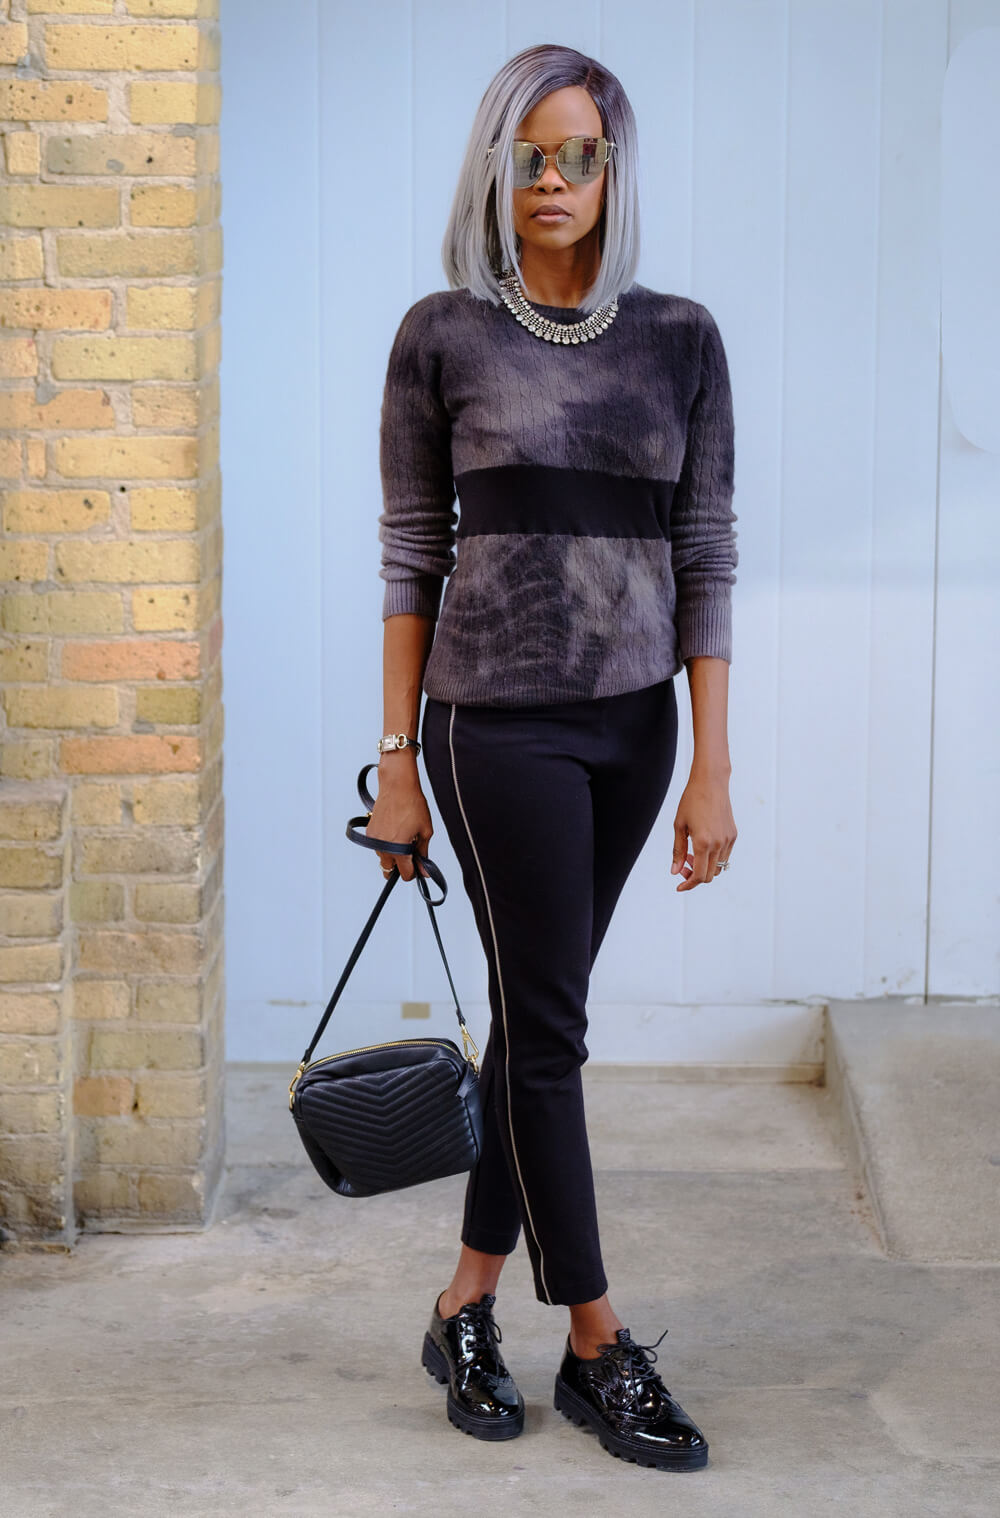 Cashmere sweater, Canadian fashion Blogger, Winnipeg Fashion Blogger, Tie Dye trend, How to style an all black outfit, Tie-Dye